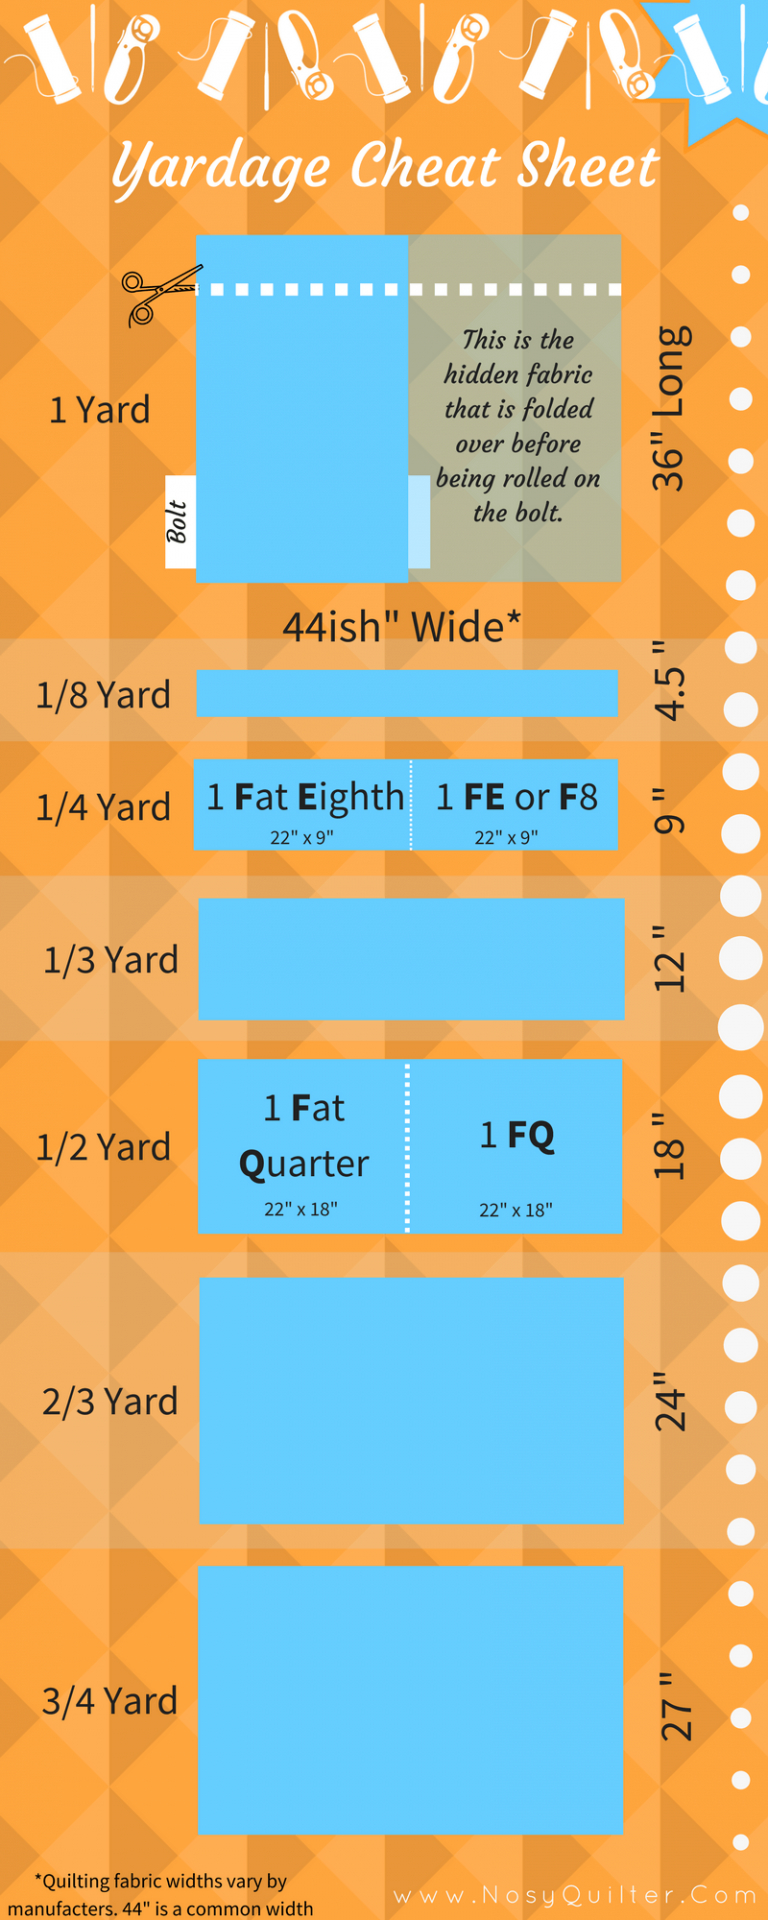 Sewing Printables Cheat Sheets Yardage To Inches Cheat Sheet A Visual Reference For Fabric Cuts